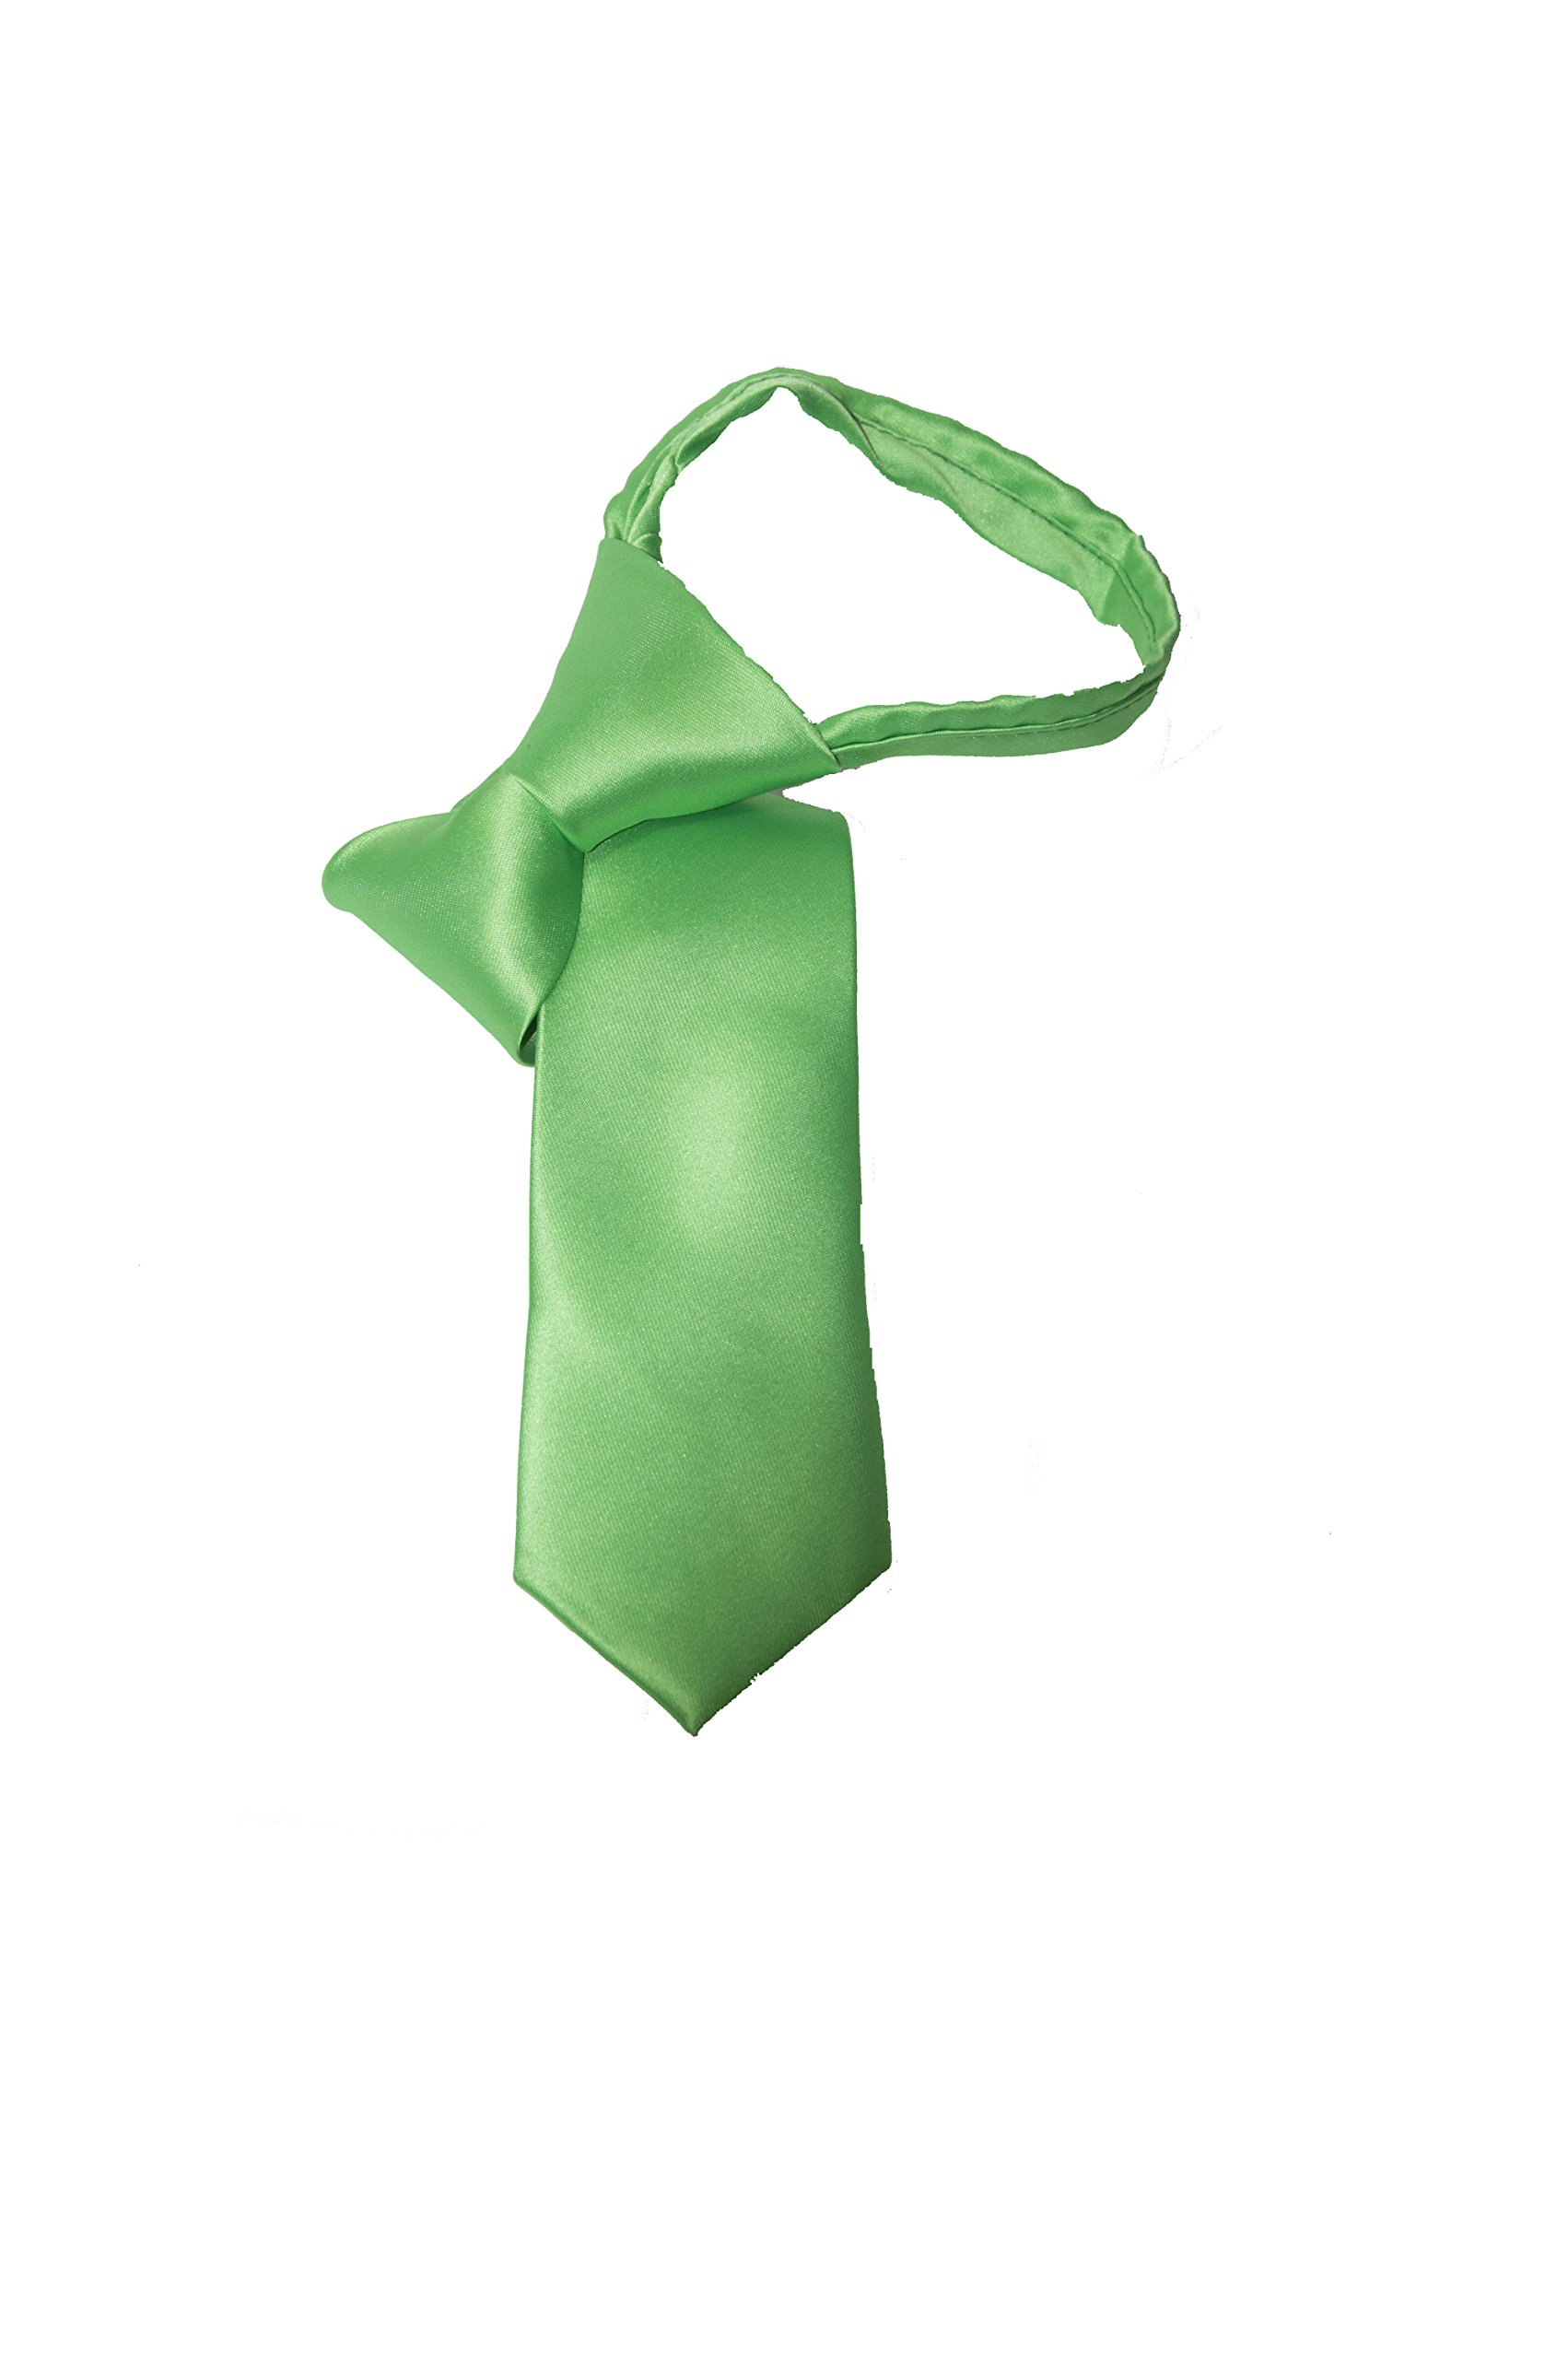 Sea Green Youth Zipper Tie by Tie the Knot Attire (Image #3)